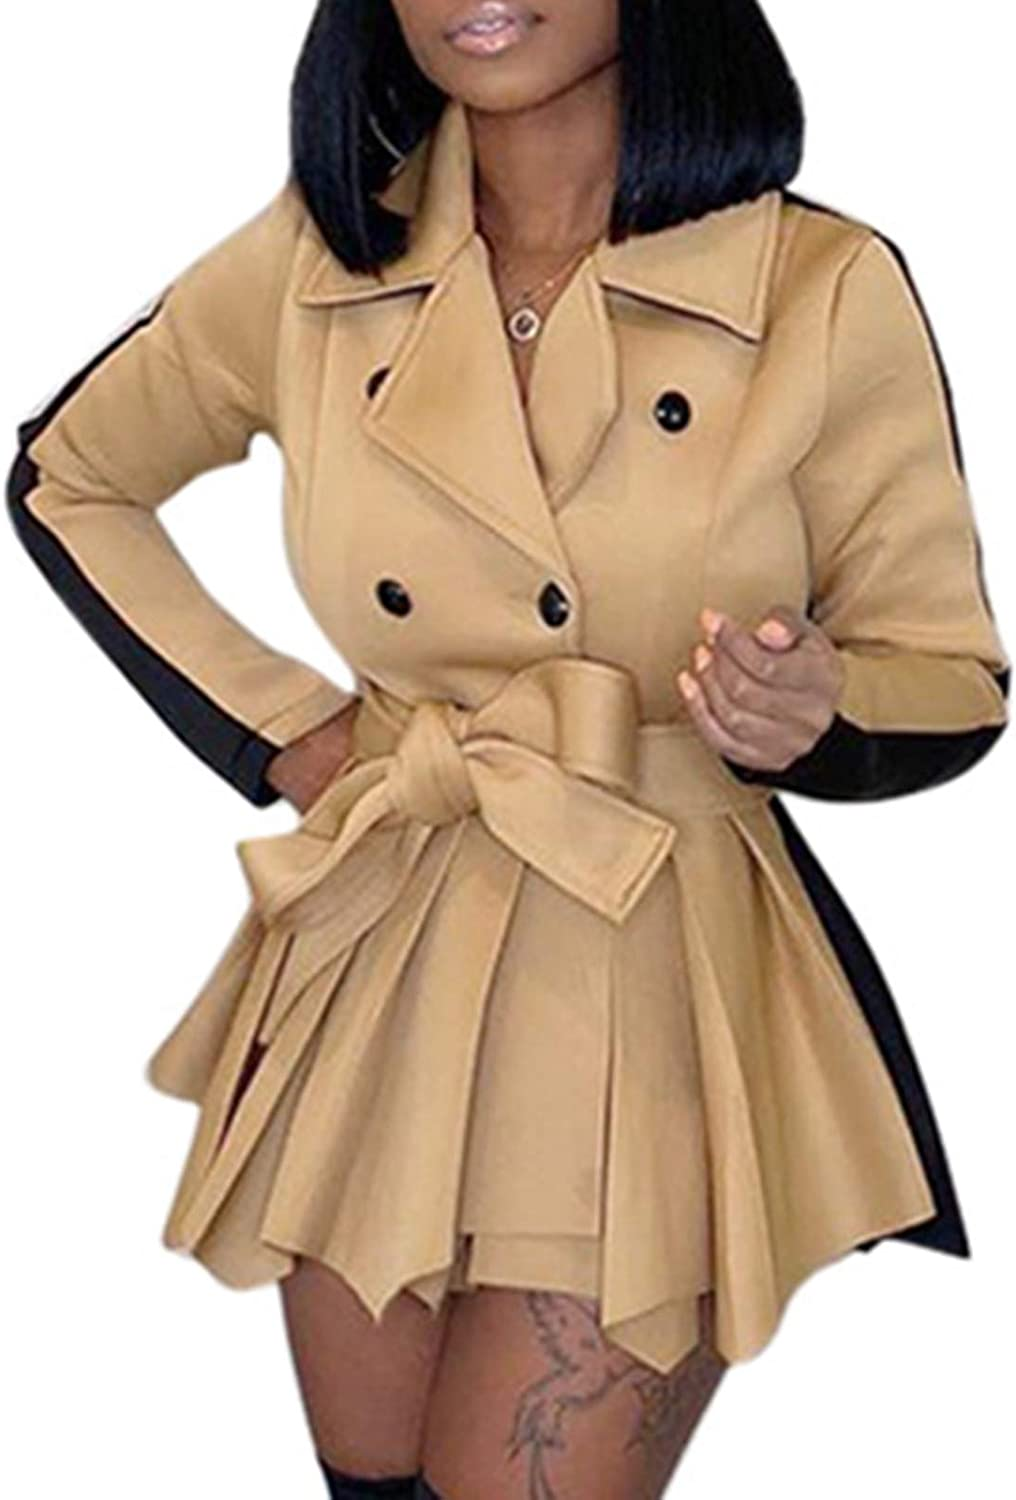 SAMACHICA shopping Women's shop Trench Coats Short Double-Breasted Block Color